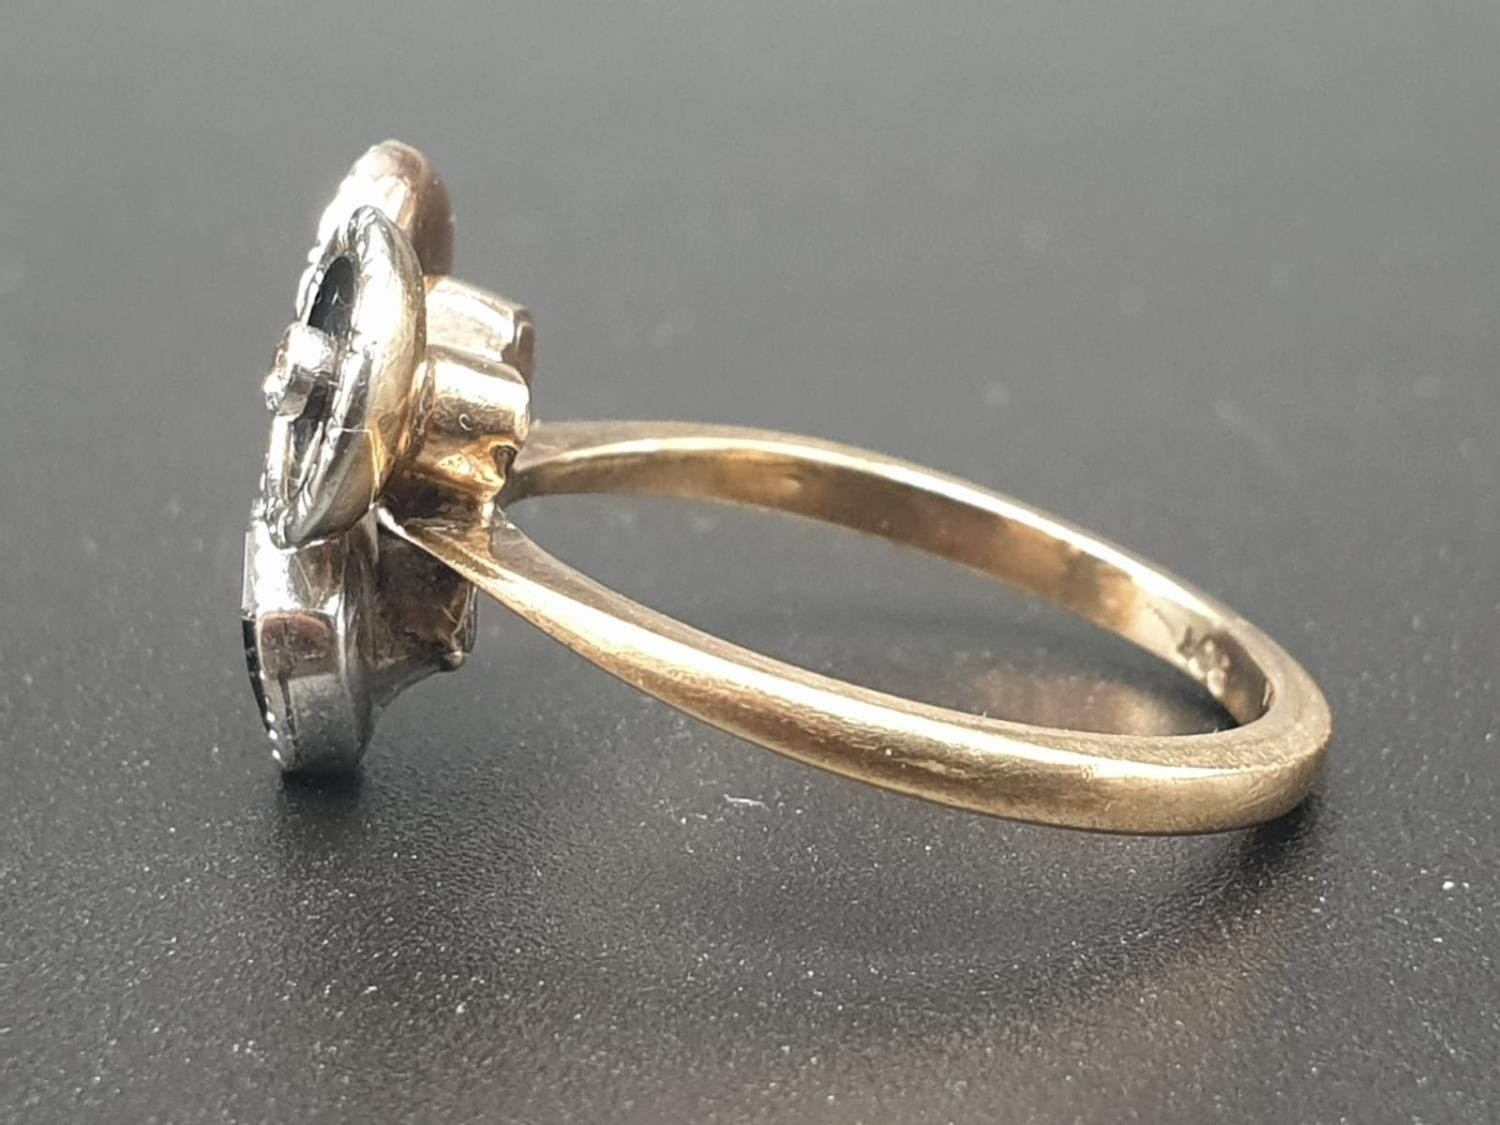 A 9K GOLD RING WITH BLACK ENAMEL AND DIAMONDS USED TO FORM THE SHAPE OF A FACE. 3.3gms size O - Image 3 of 6